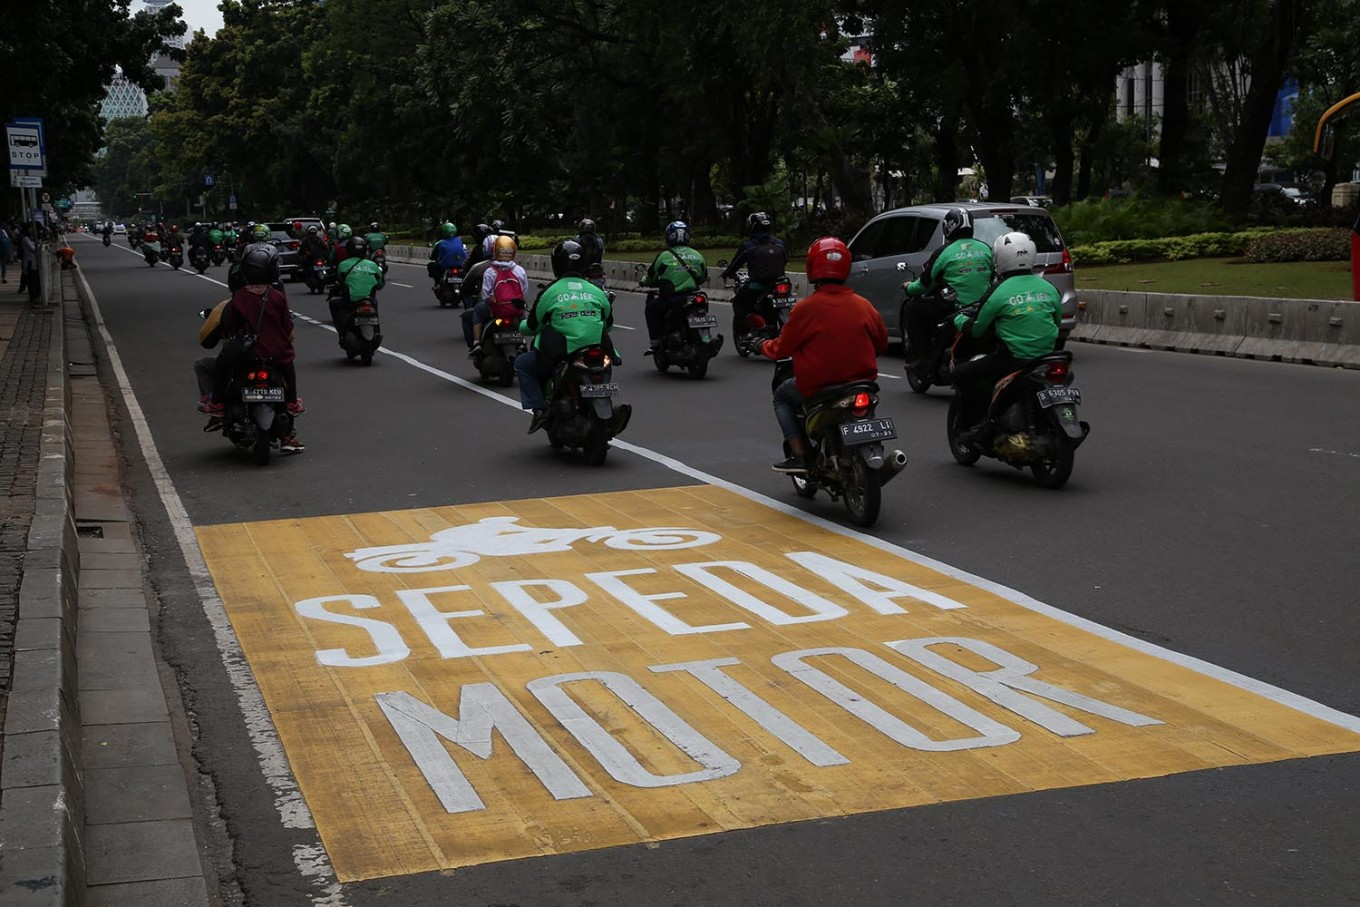 Motorcyclists drive outside a lane dedicated to motorcycles on Jl. Medan Merdeka Barat in Central Jakarta on Tuesday, January.16. JP/P.J.Leo